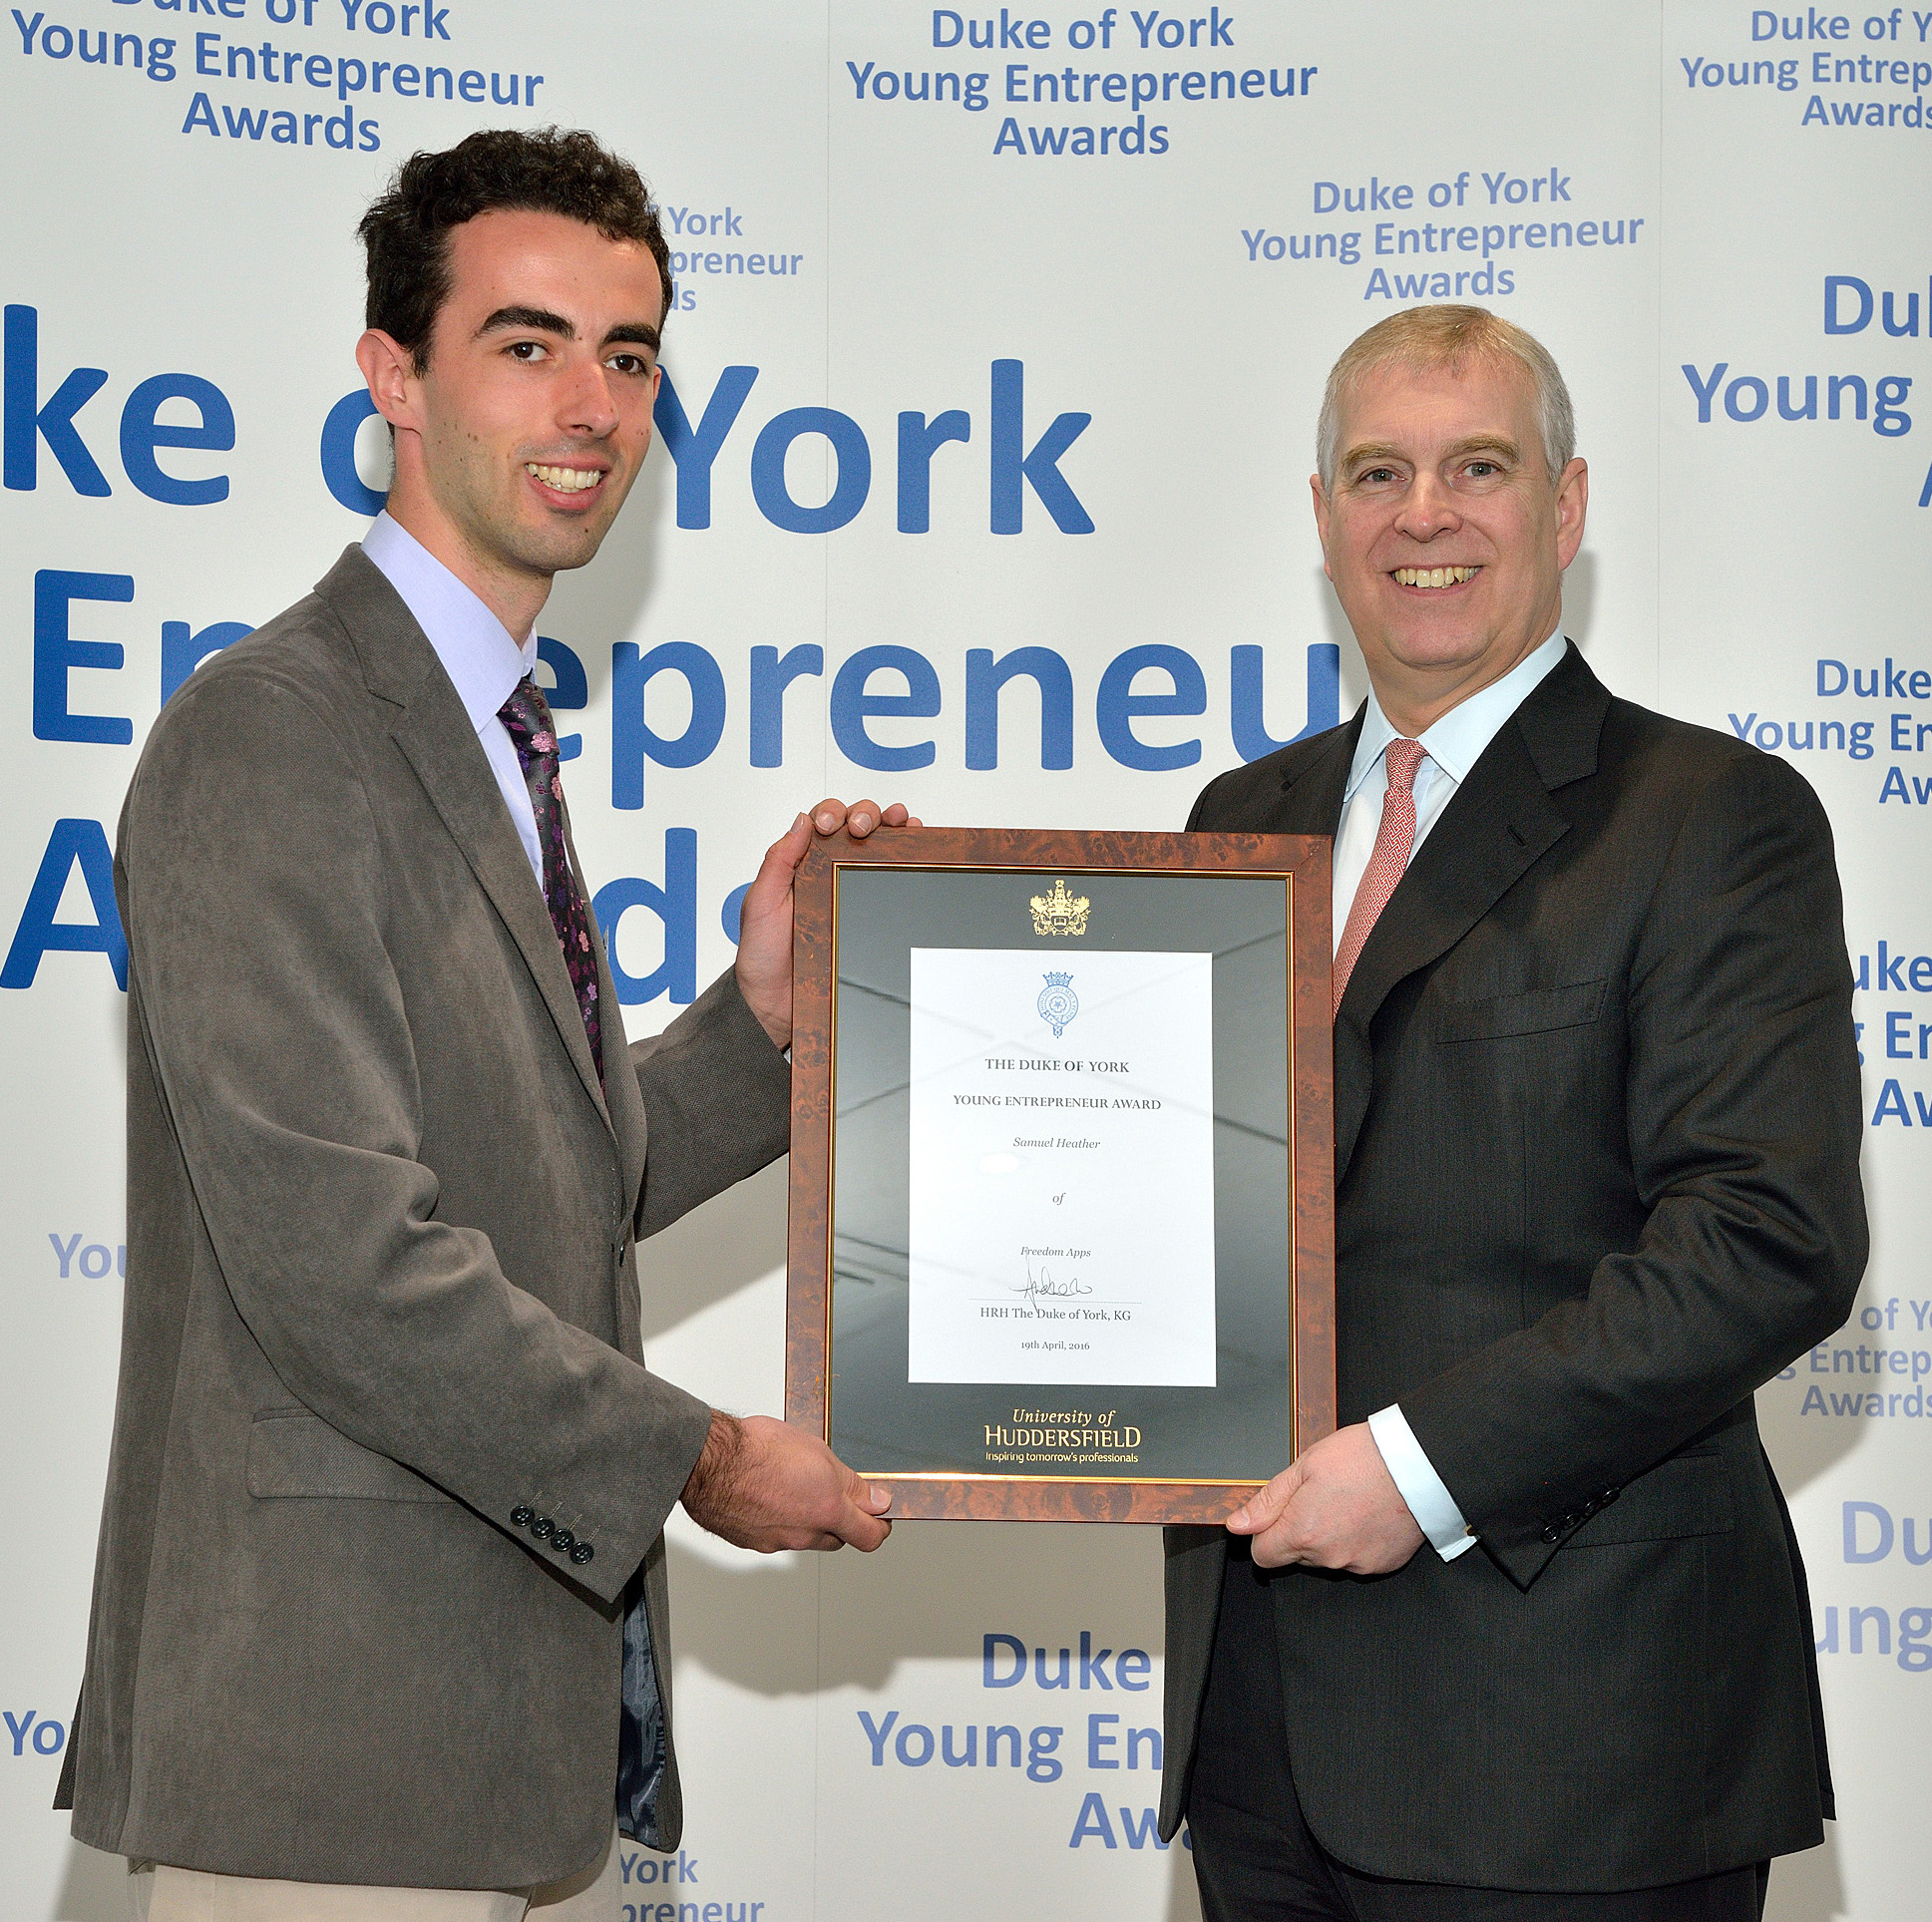 Receiving my award from the Duke of York